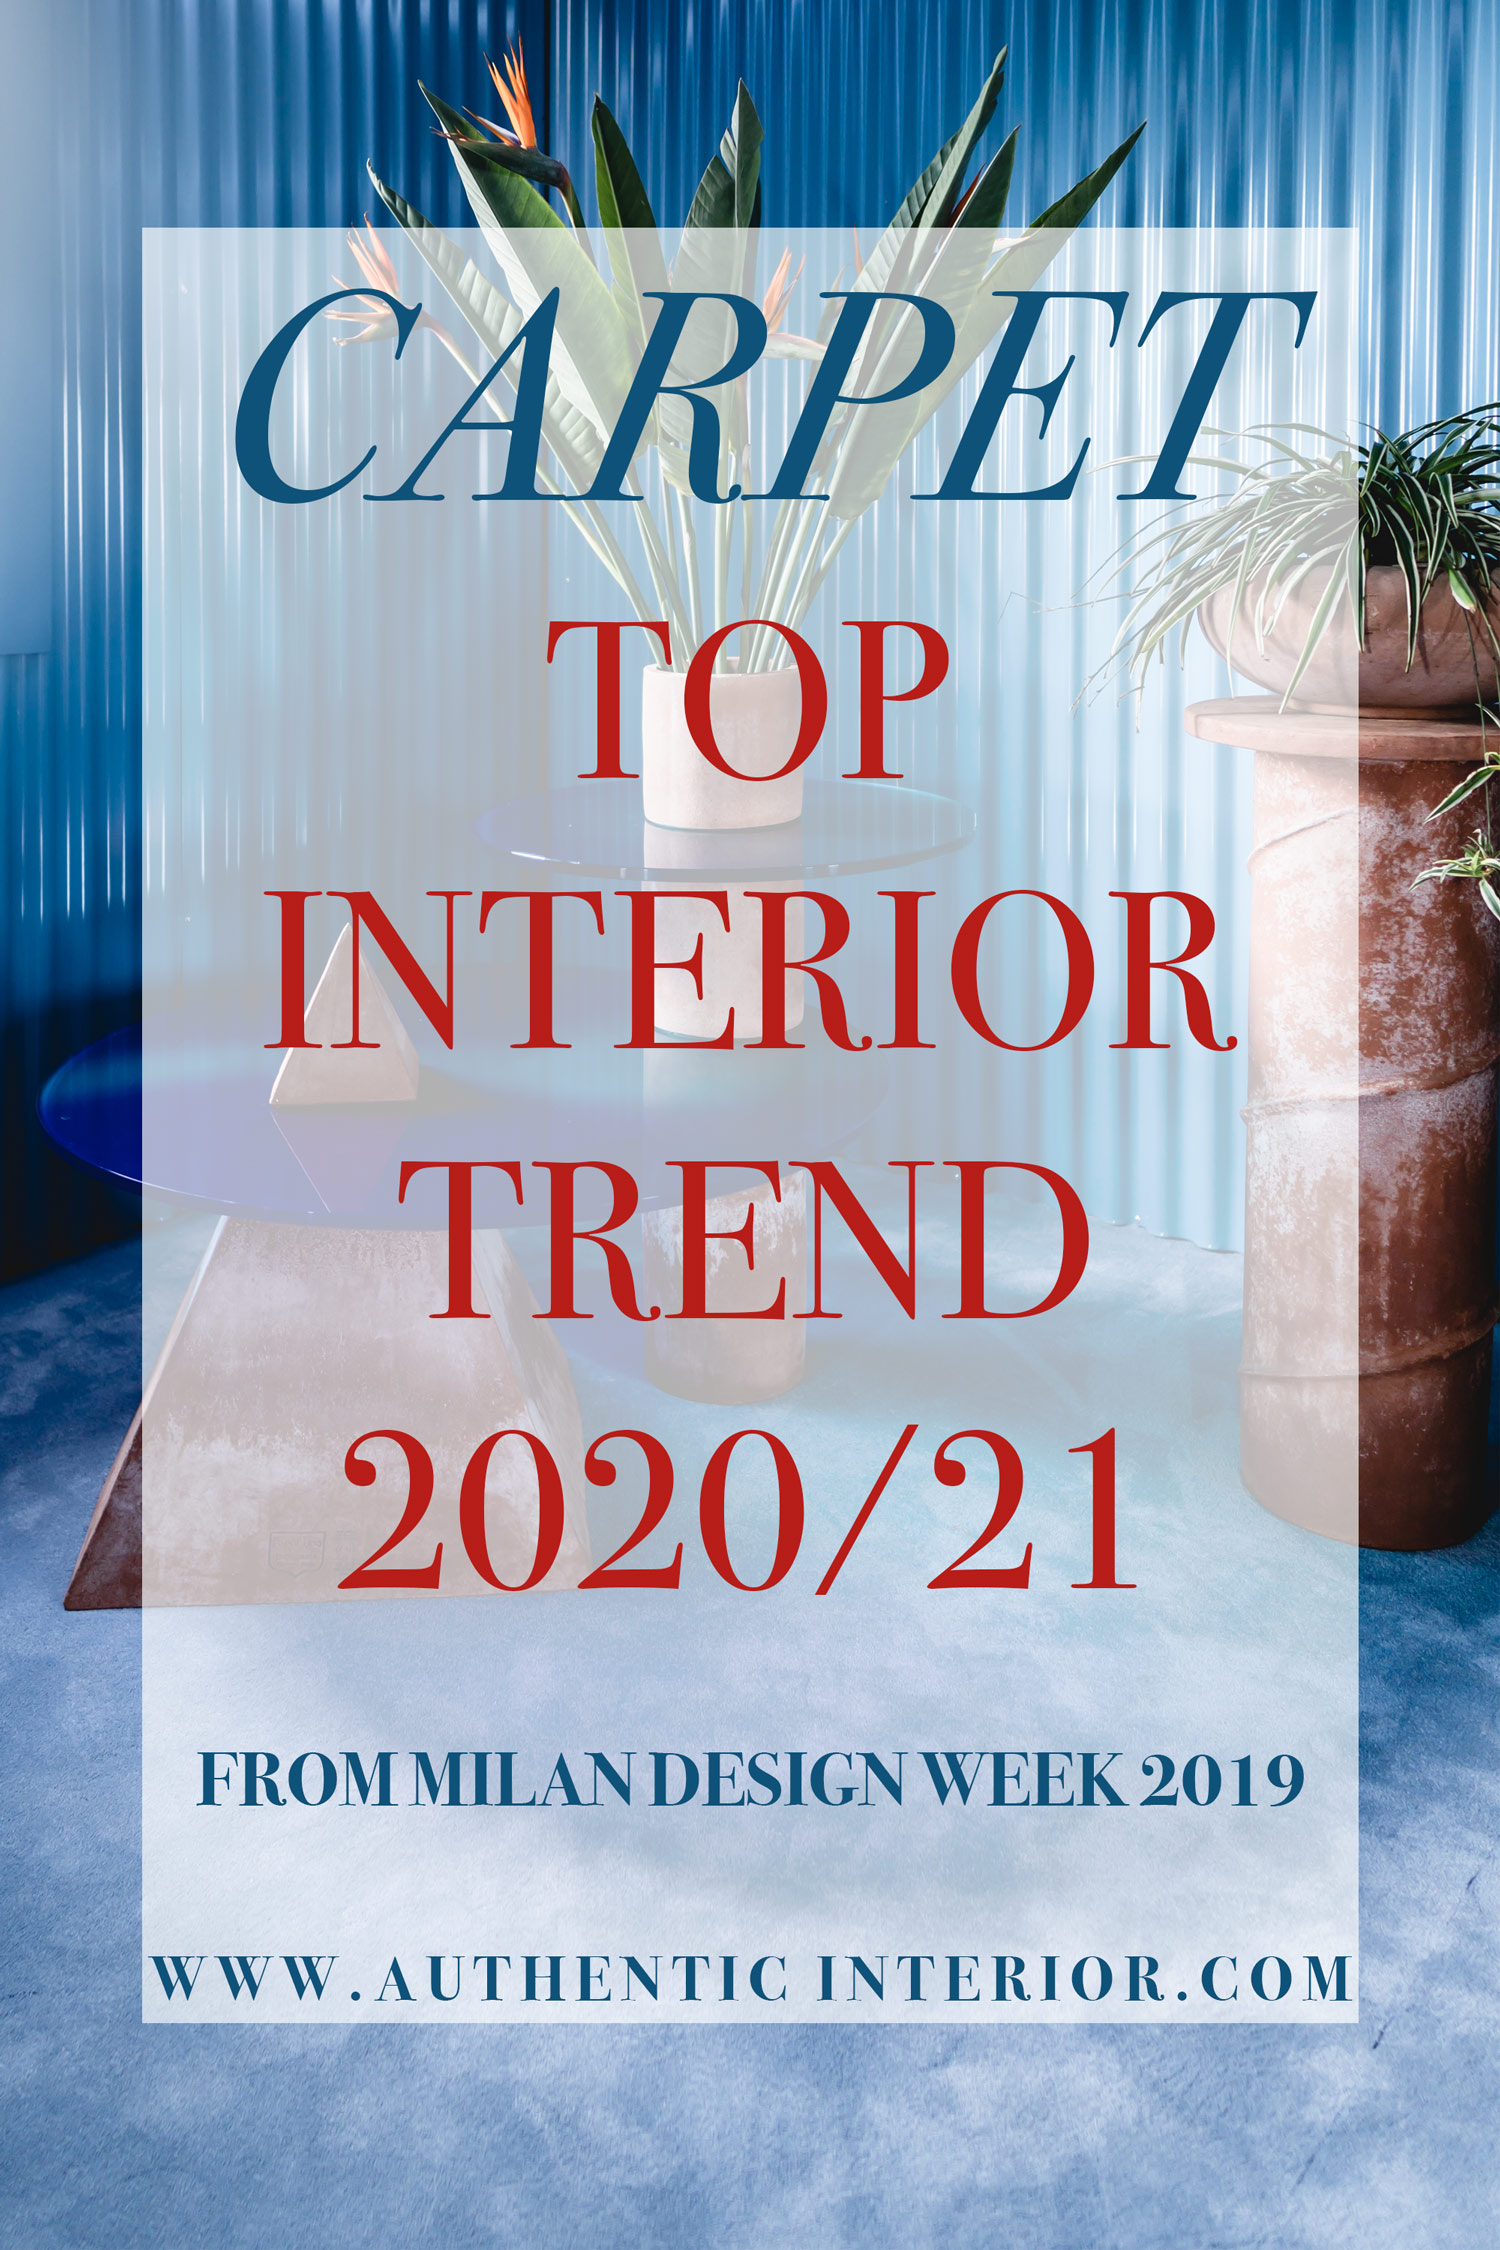 Interior design trends for 2020 - Carpet interior trend - Authentic Interior design studio & blog www.authenticinterior.com